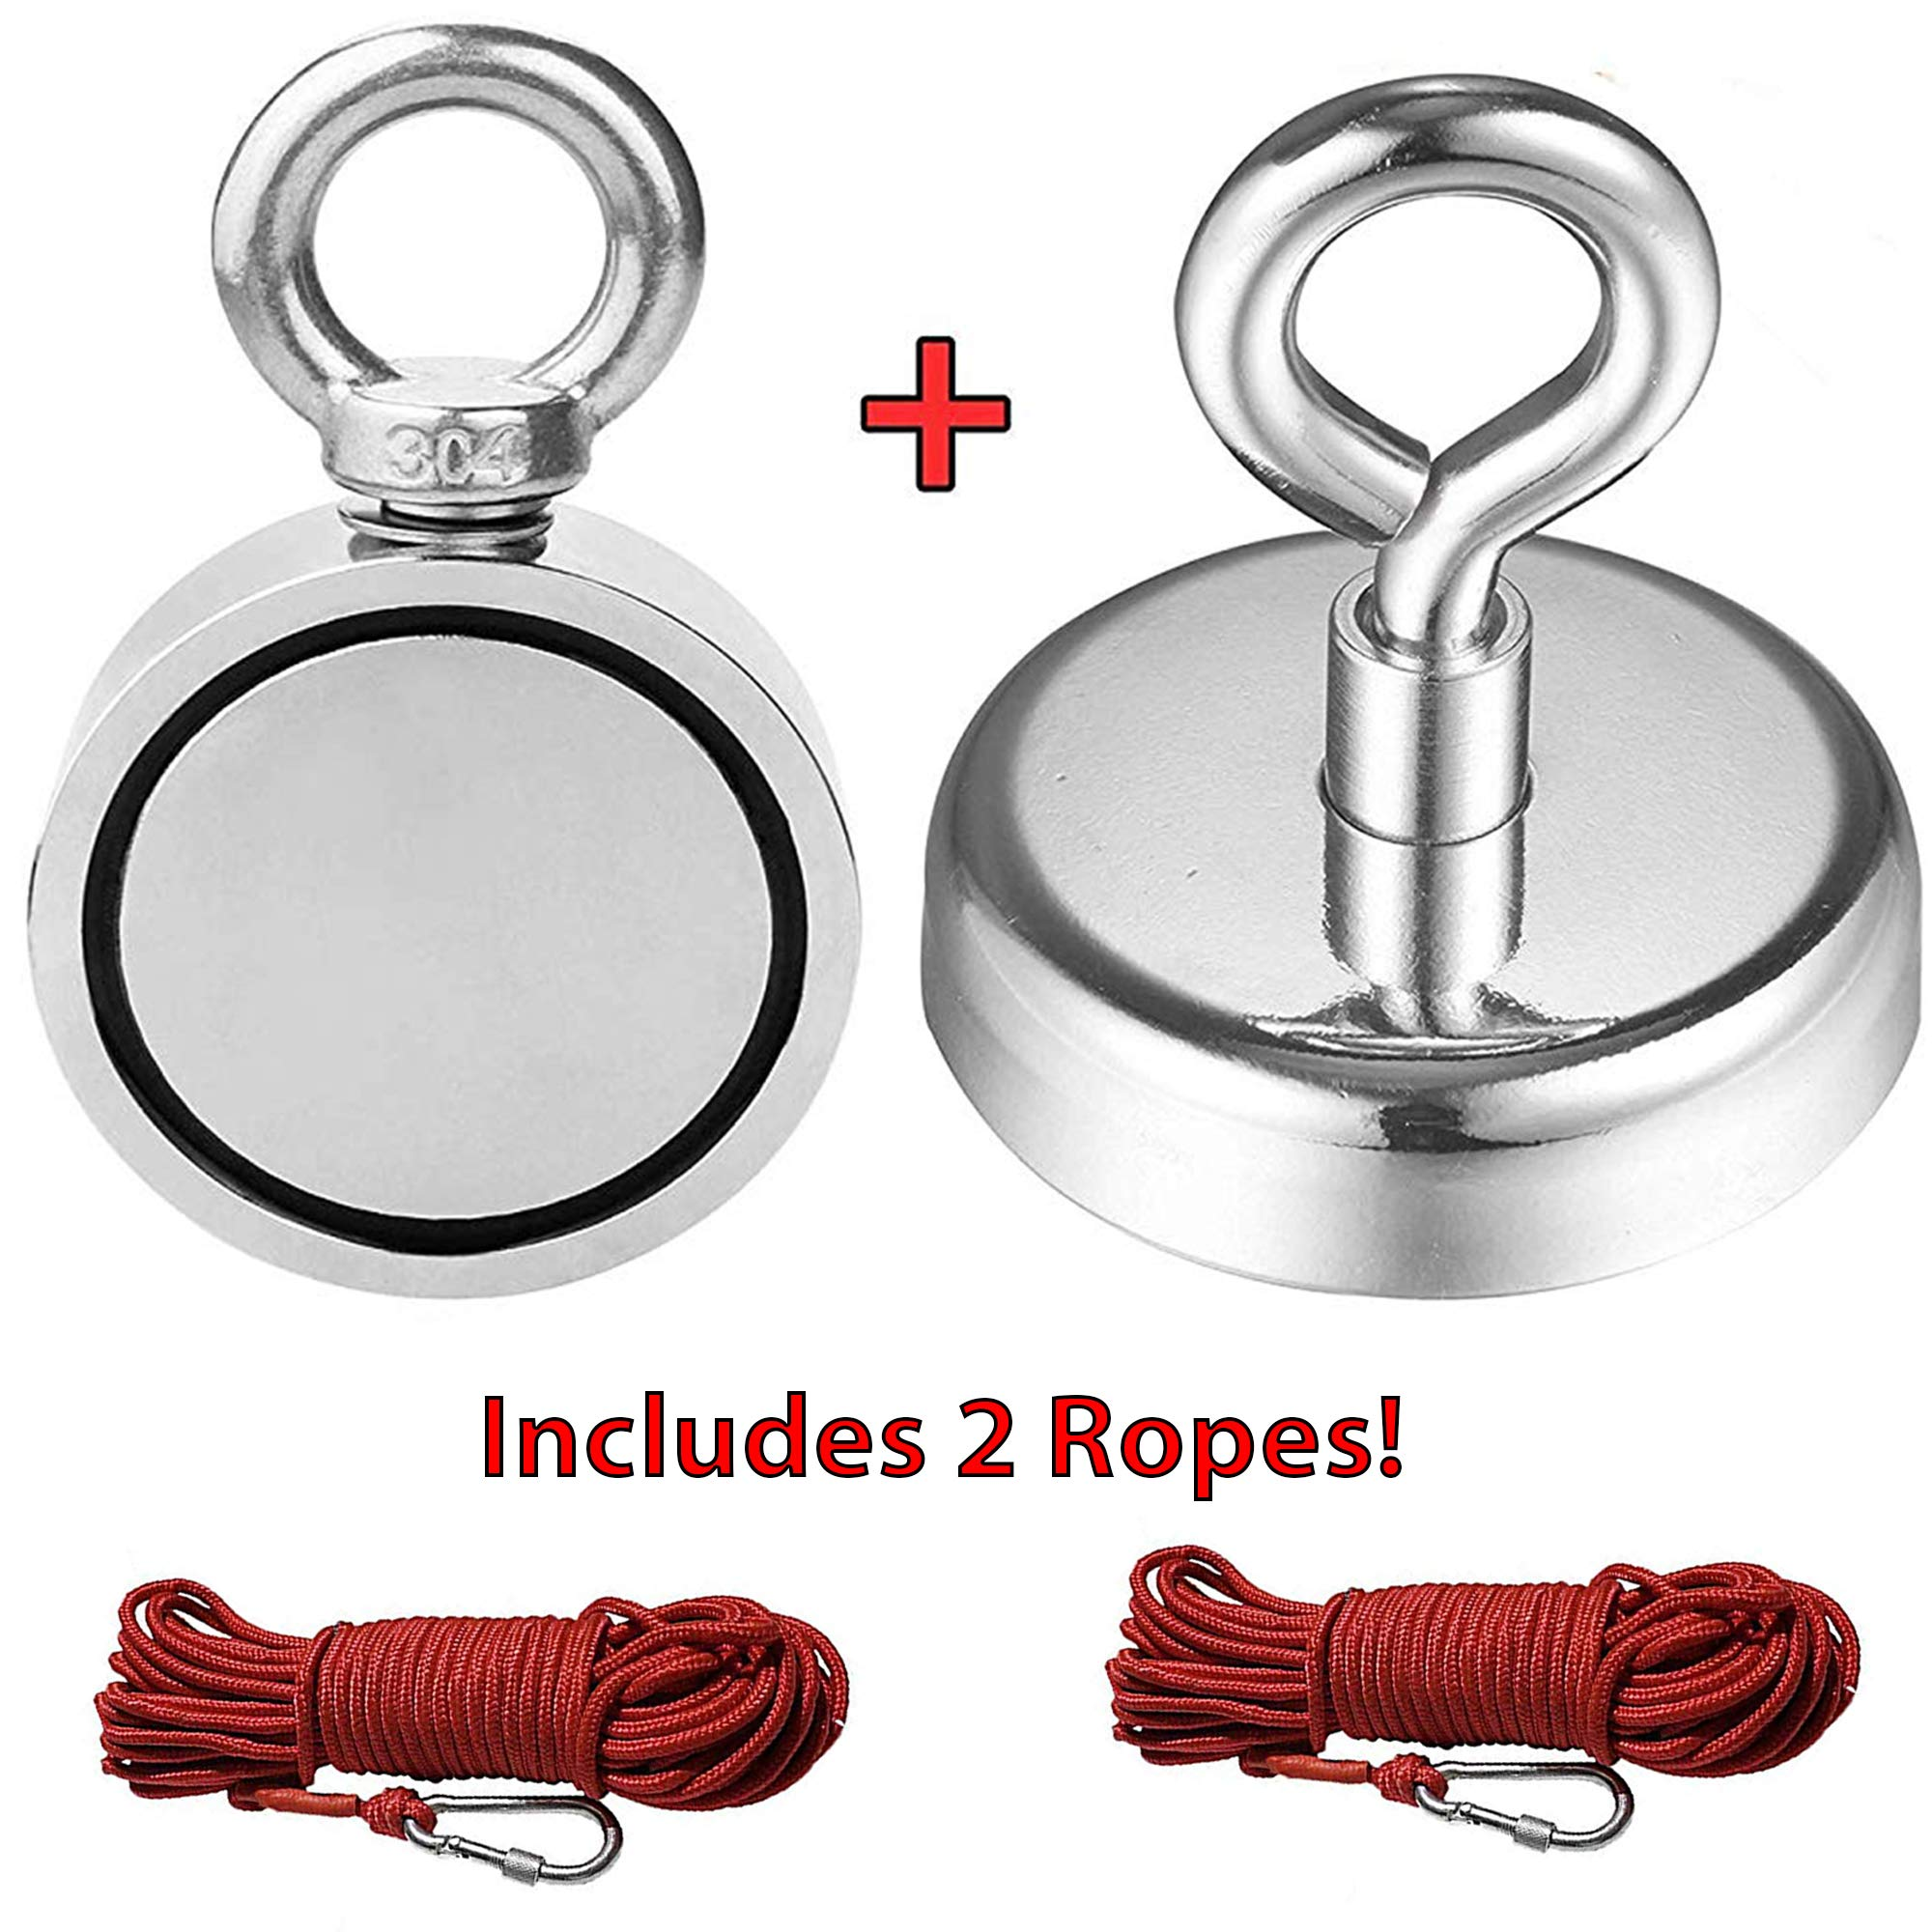 Sarabi.K Magnet Fishing Kit: 1) 529LB Combined Double Sided Magnet, 1) 264LB Single Sided Magnet and 2) Magnet Fishing Rope (65FT) - Perfect Magnet for Fishing, Retrieving and Gifts